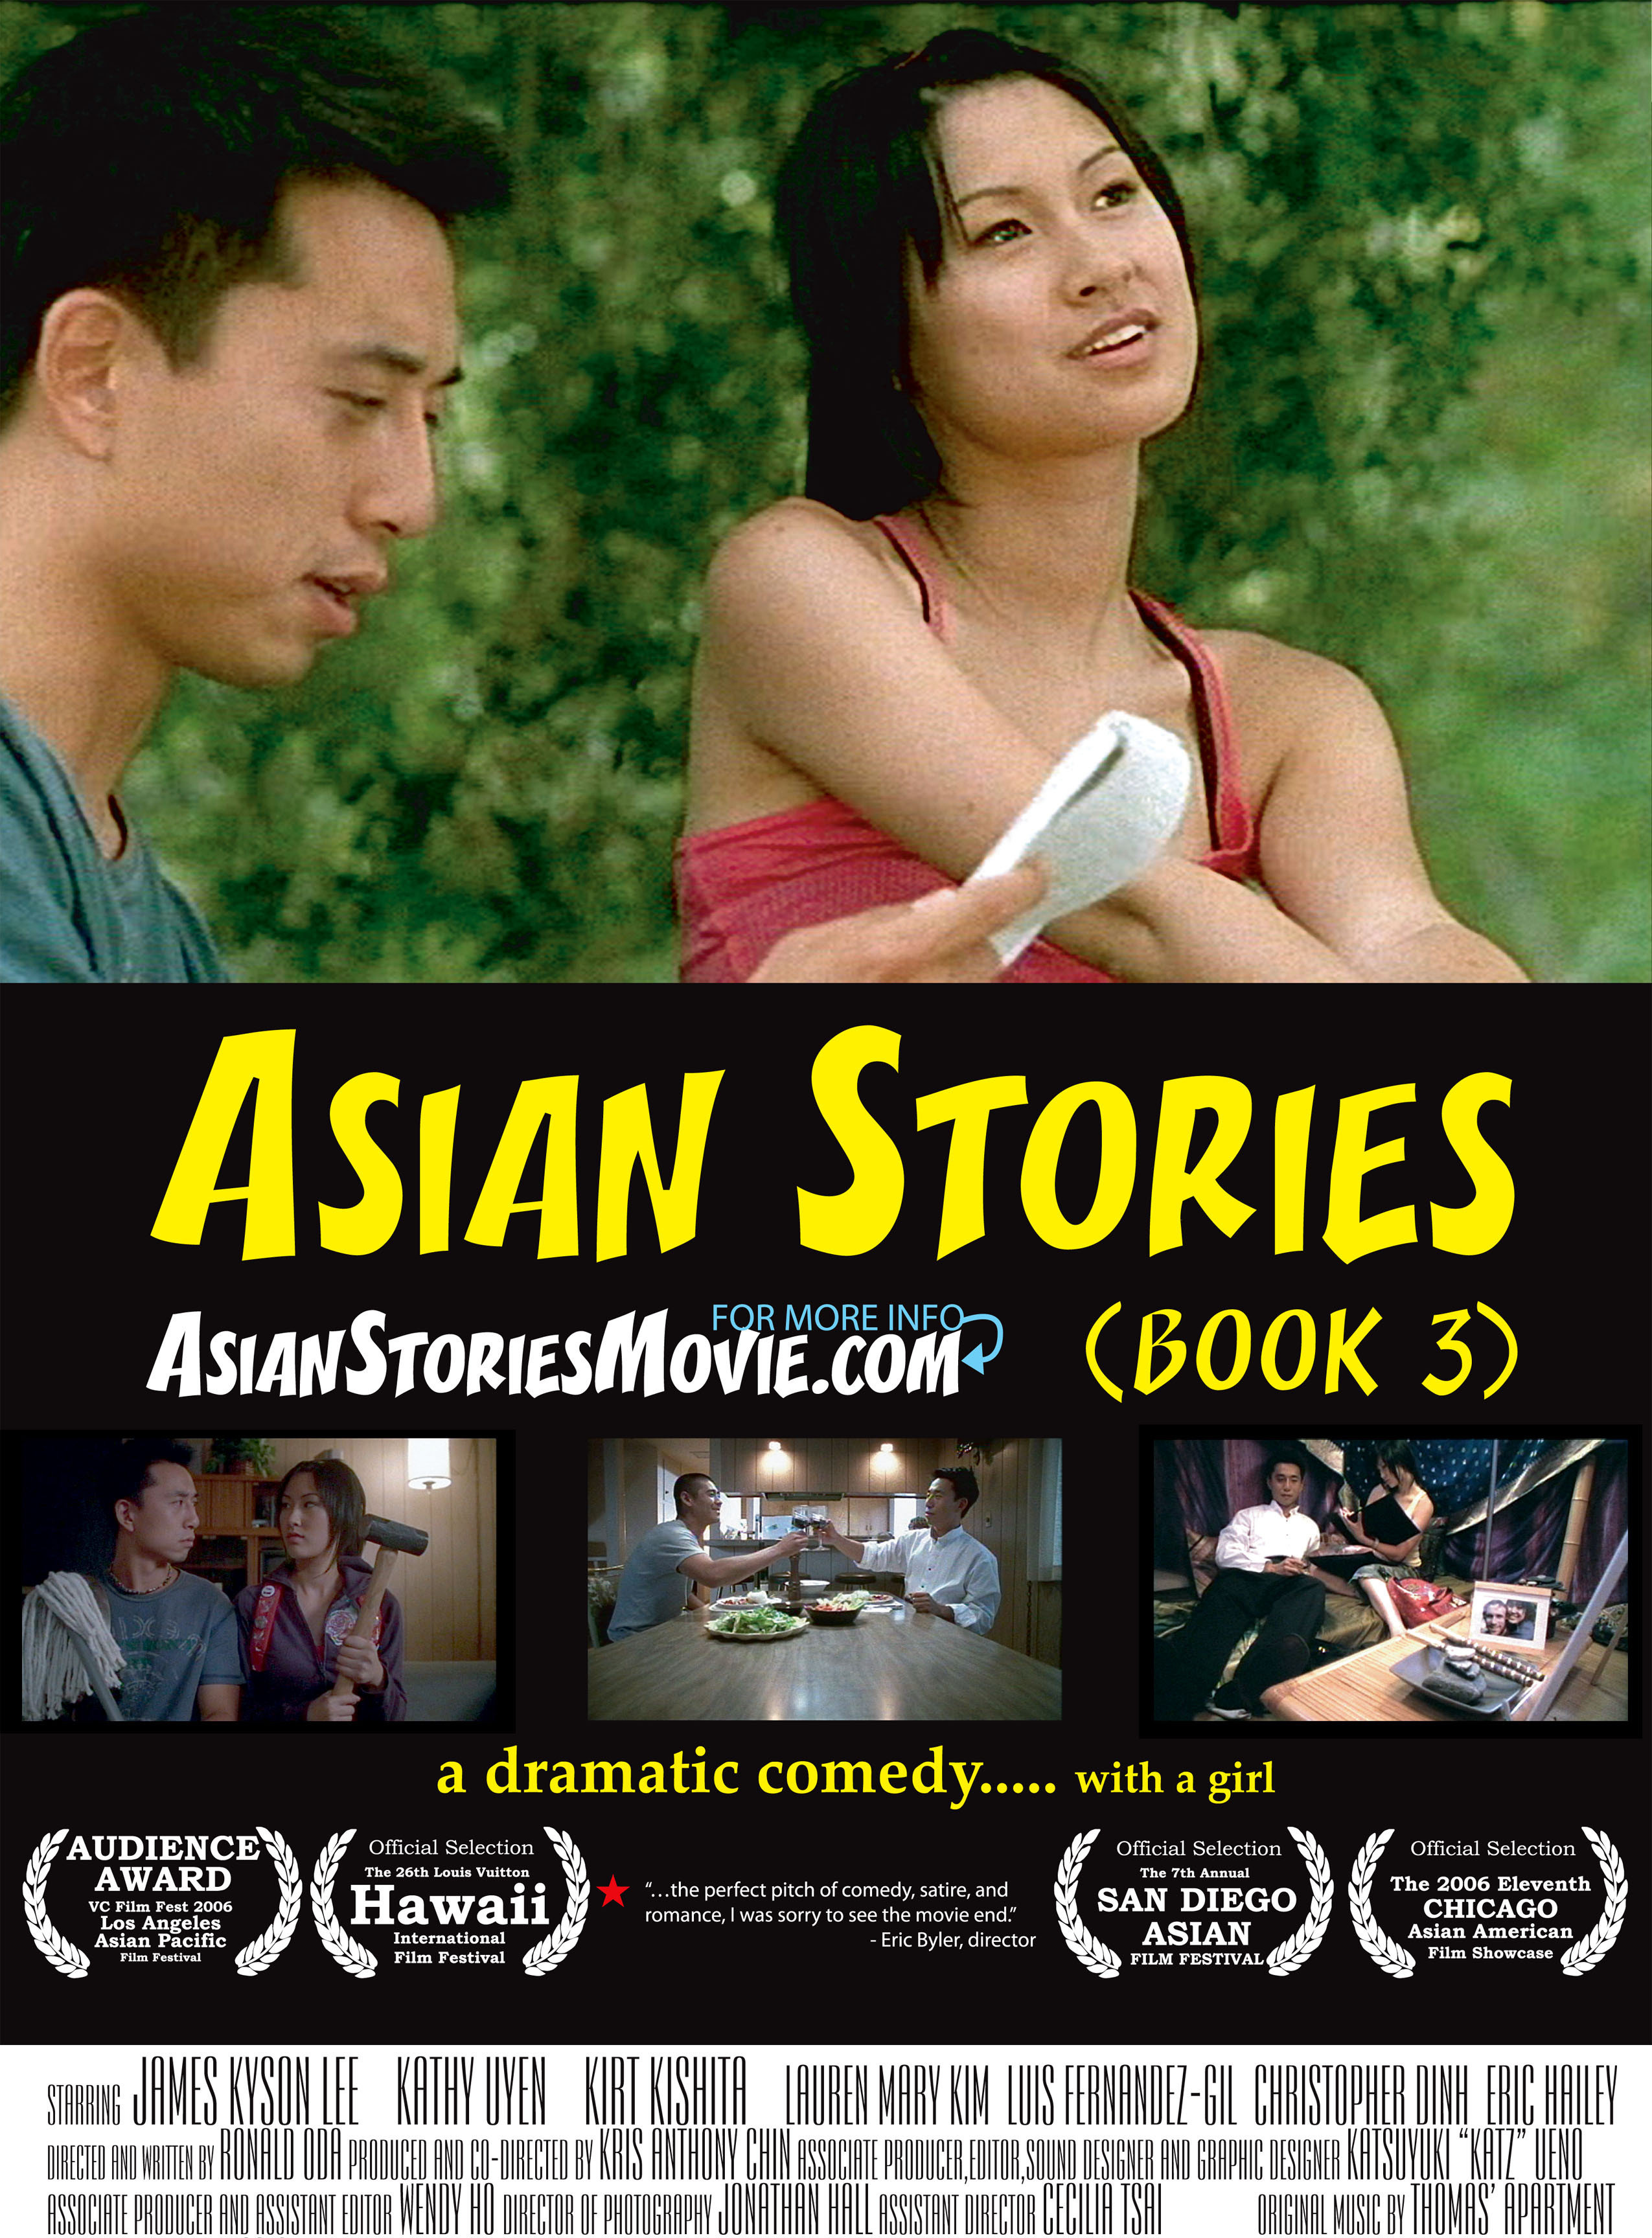 Chicago asian american film festival really